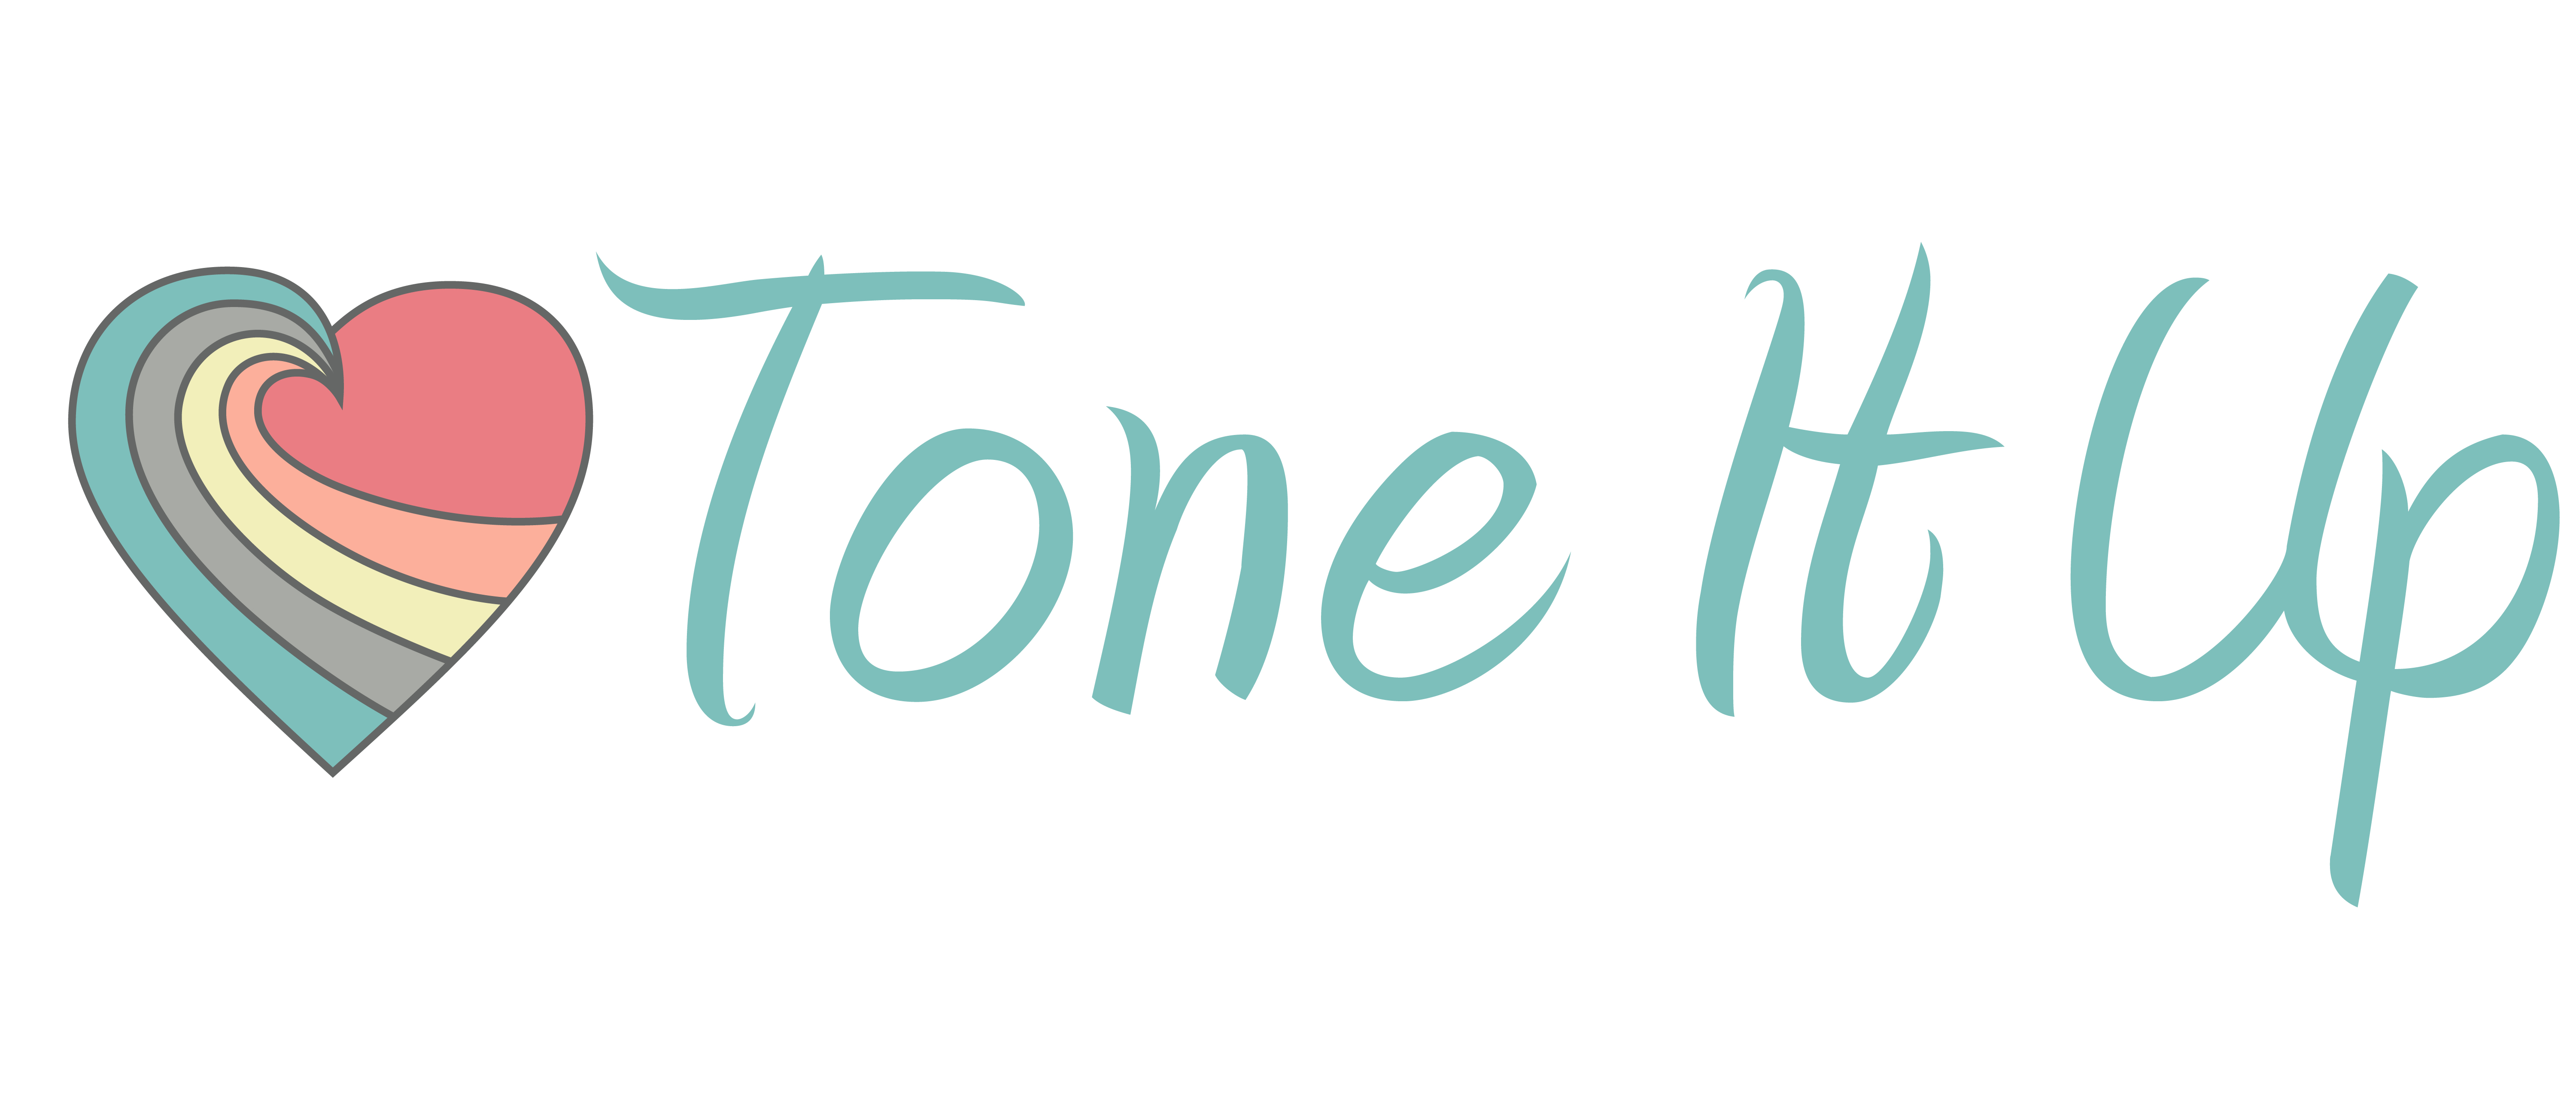 tone in up